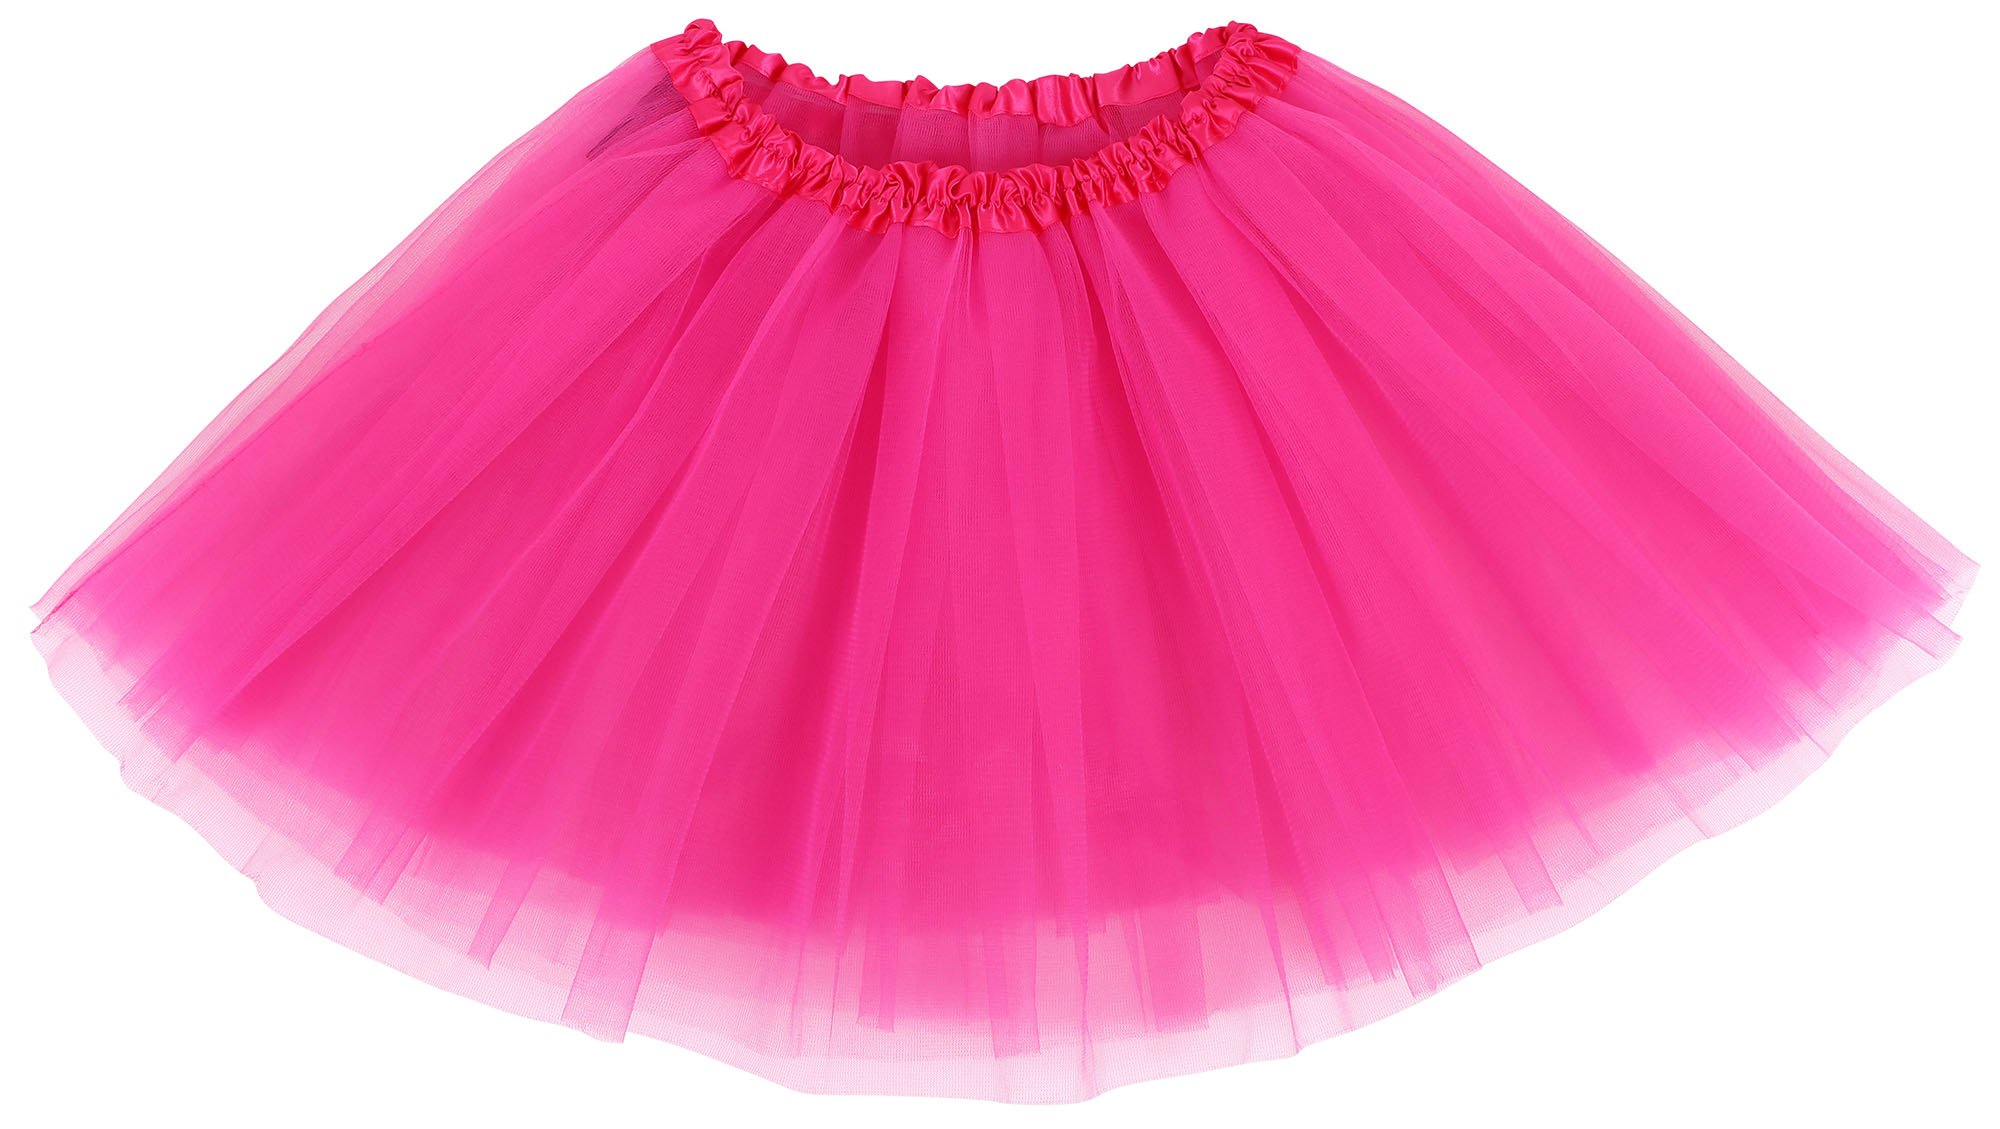 Simplicity Women's Classic Elastic, 3-Layered Tulle Tutu Skirt, Rose, One Size